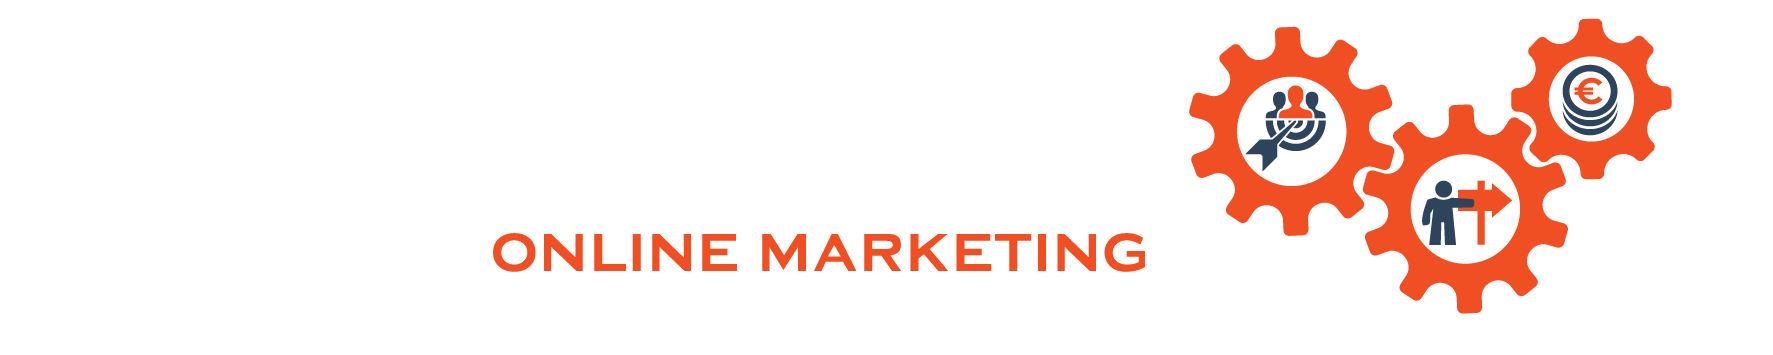 Rainmaker Online Marketing